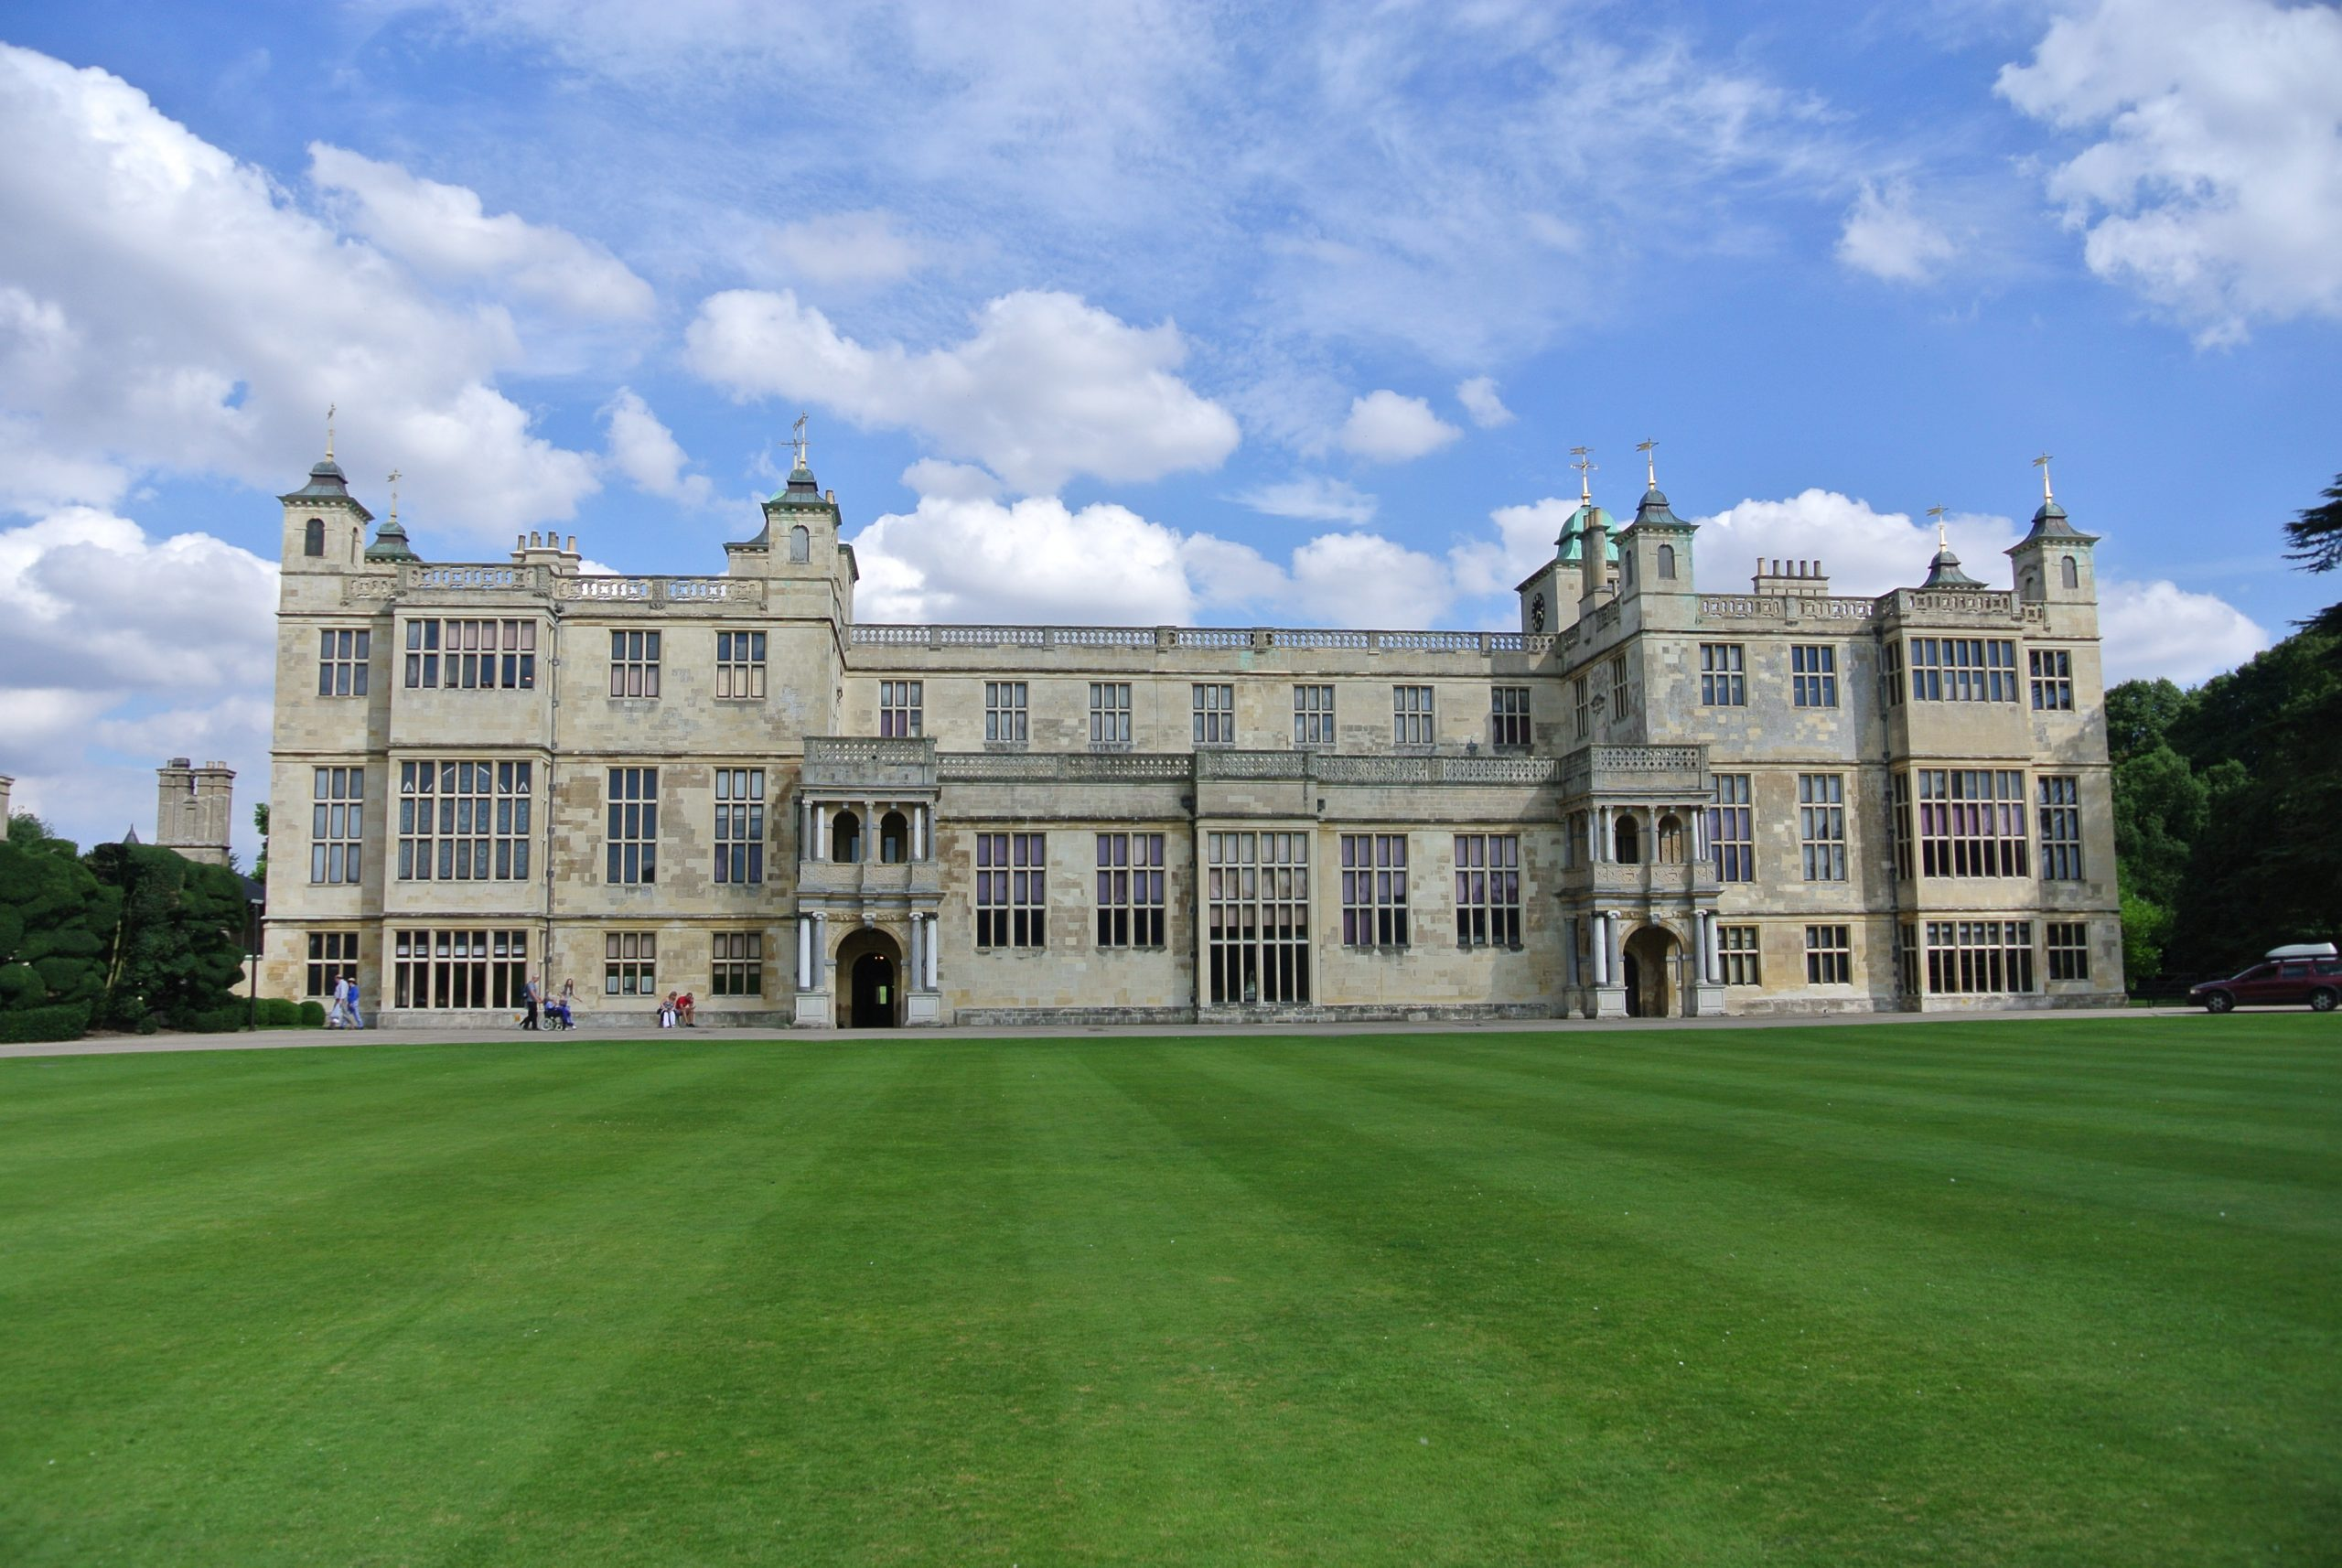 Audley End by Juliamaud